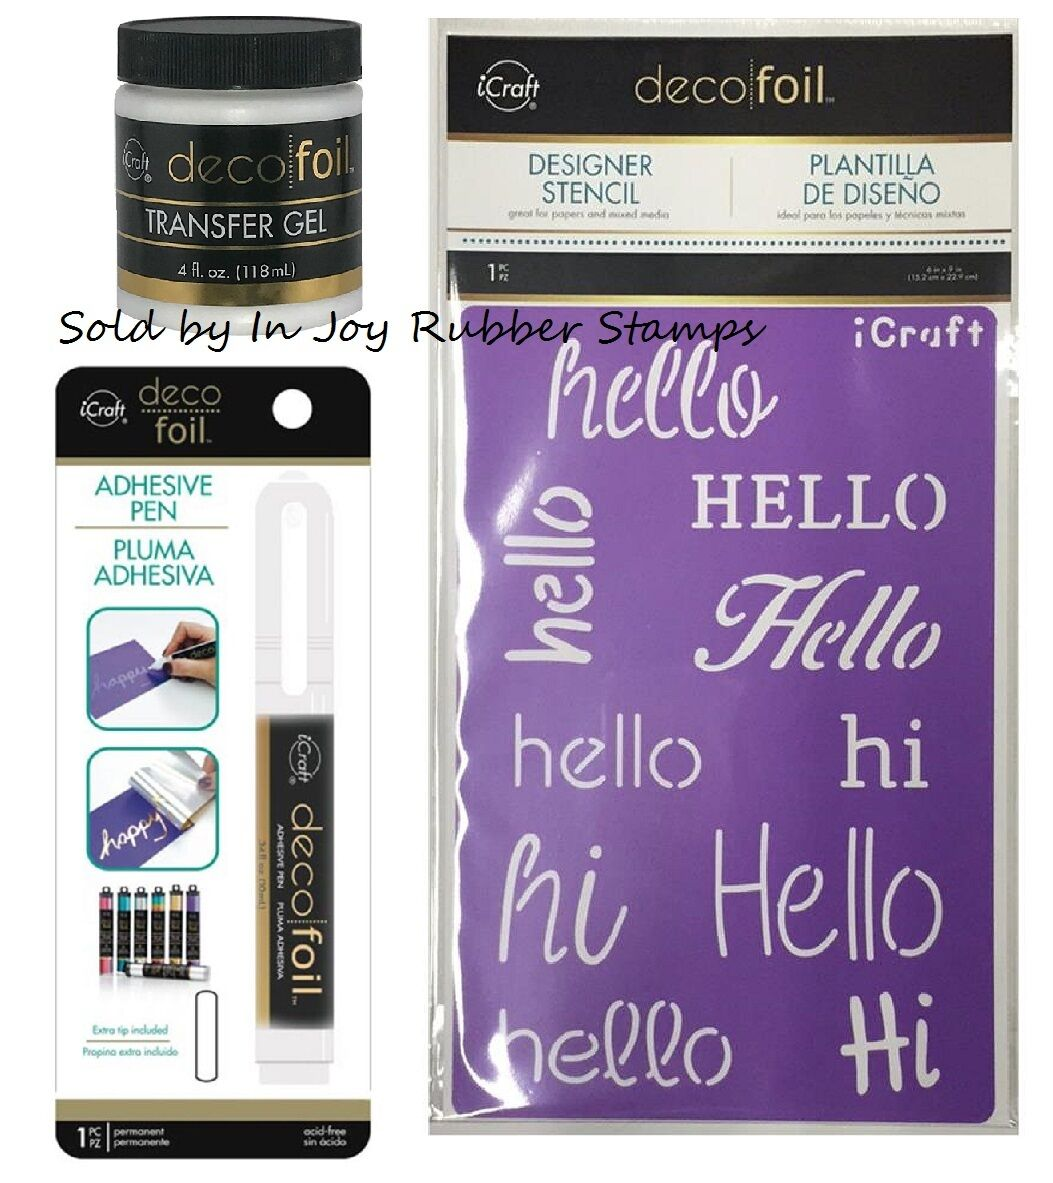 iCraft Deco Foil Adhesive Pen, TRANSFER GEL, Stencil, or